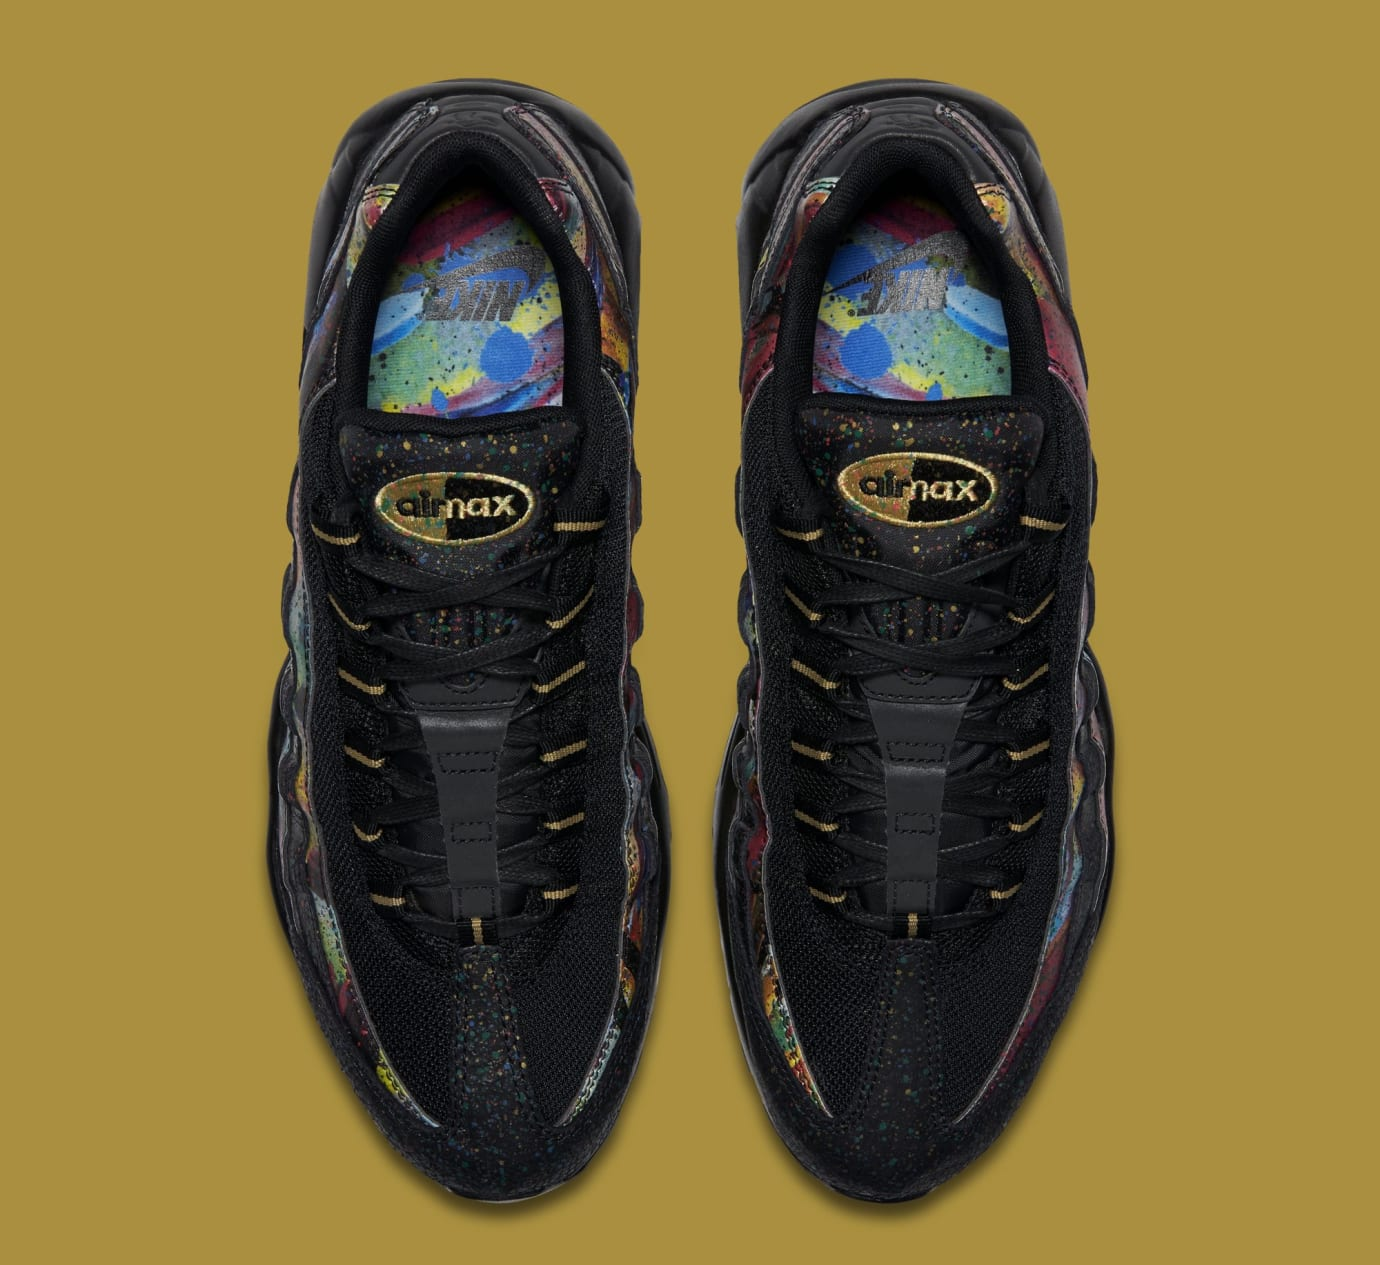 919d14bbf7 Nike Air Force 1 Low Air Max 95 'Caribana' Pack Release Date   Sole ...